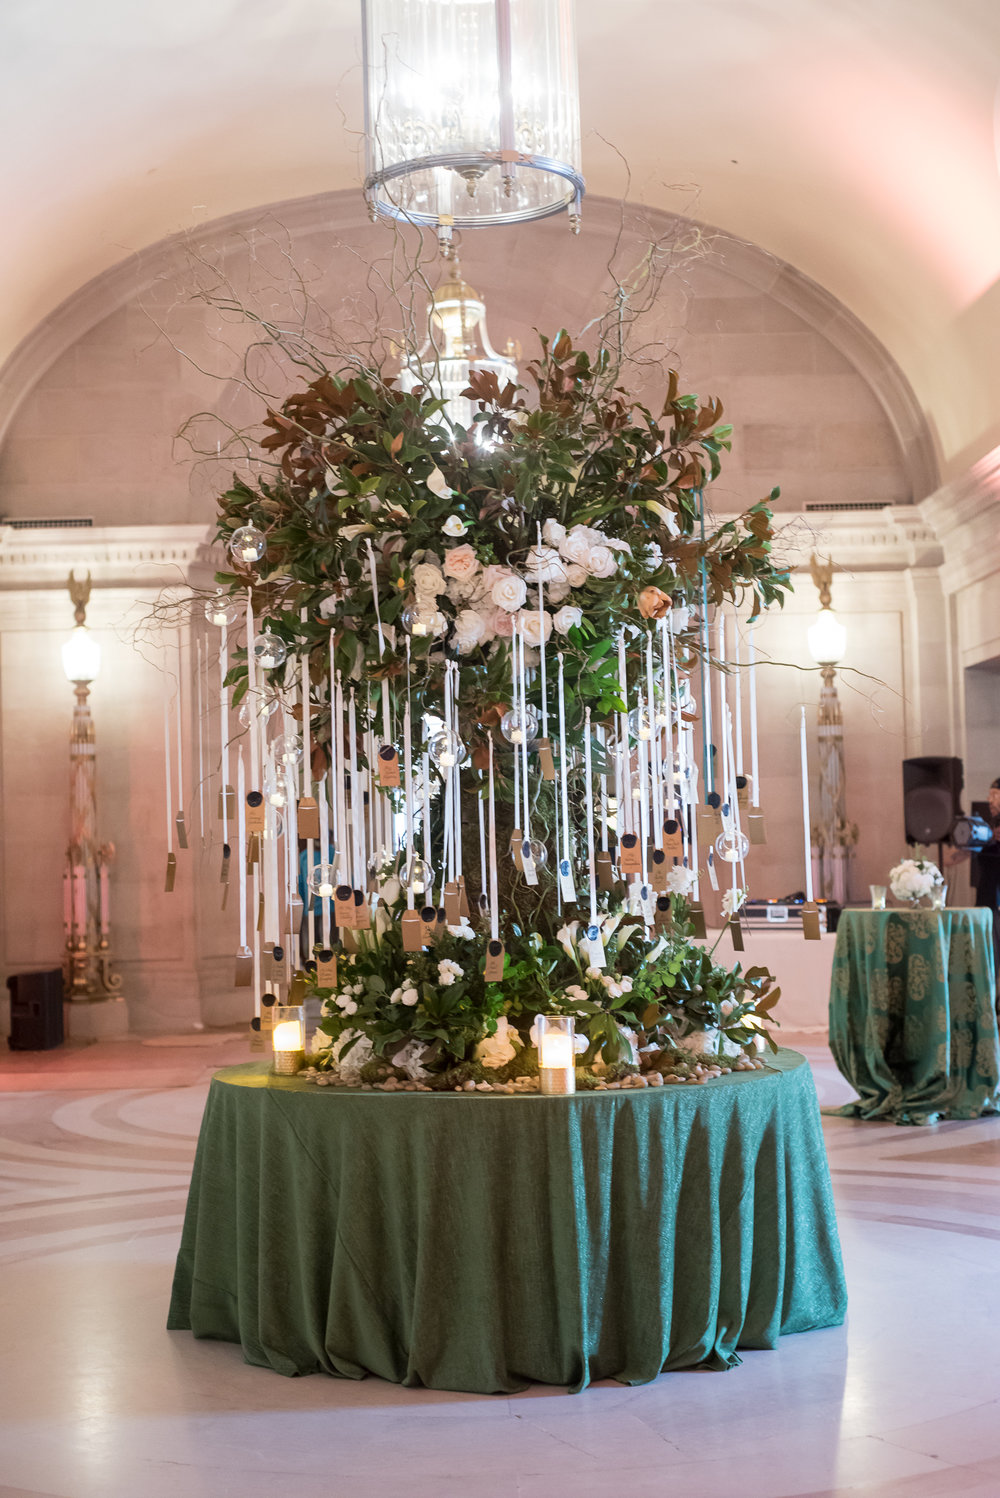 Wedding Escort Card Display Andrew Mellon DC Luxury Wedding Planner A Beyoutiful Fete Events and Design